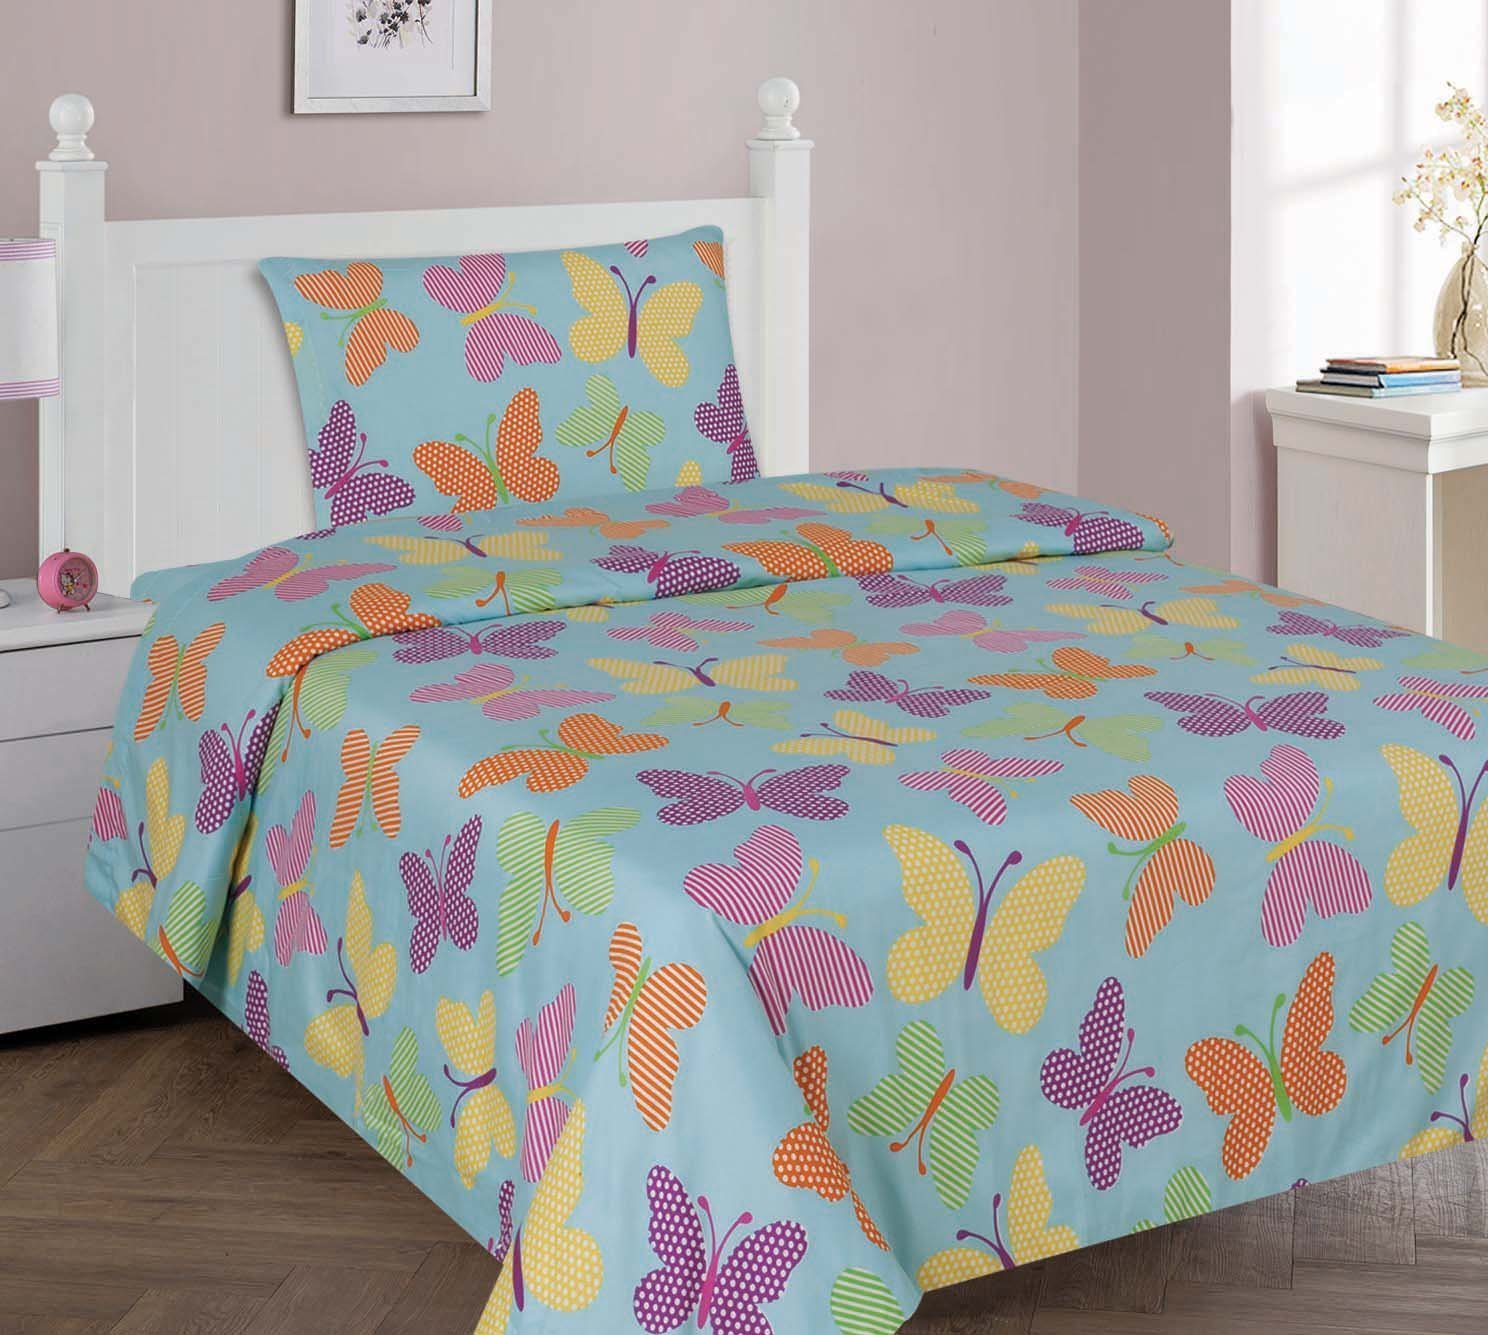 (Twin, Turquoise) Kids printed sheet set: Flat & fitted sheets with pillow cases. Choose from butterfly, Dinosaur, Shark, Princess, sports, sailor prints Twin or Full (Twin, Turquoise) B078SL2P92 ツイン|ターコイズ ターコイズ ツイン